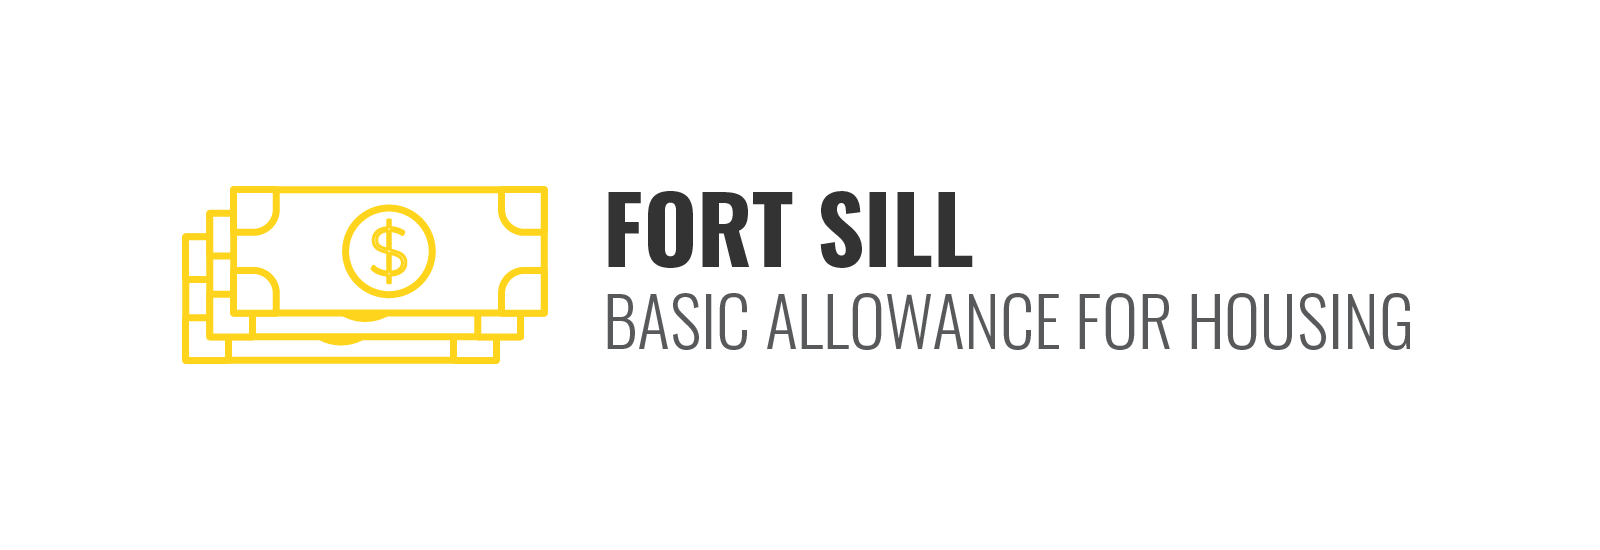 Fort Sill BAH